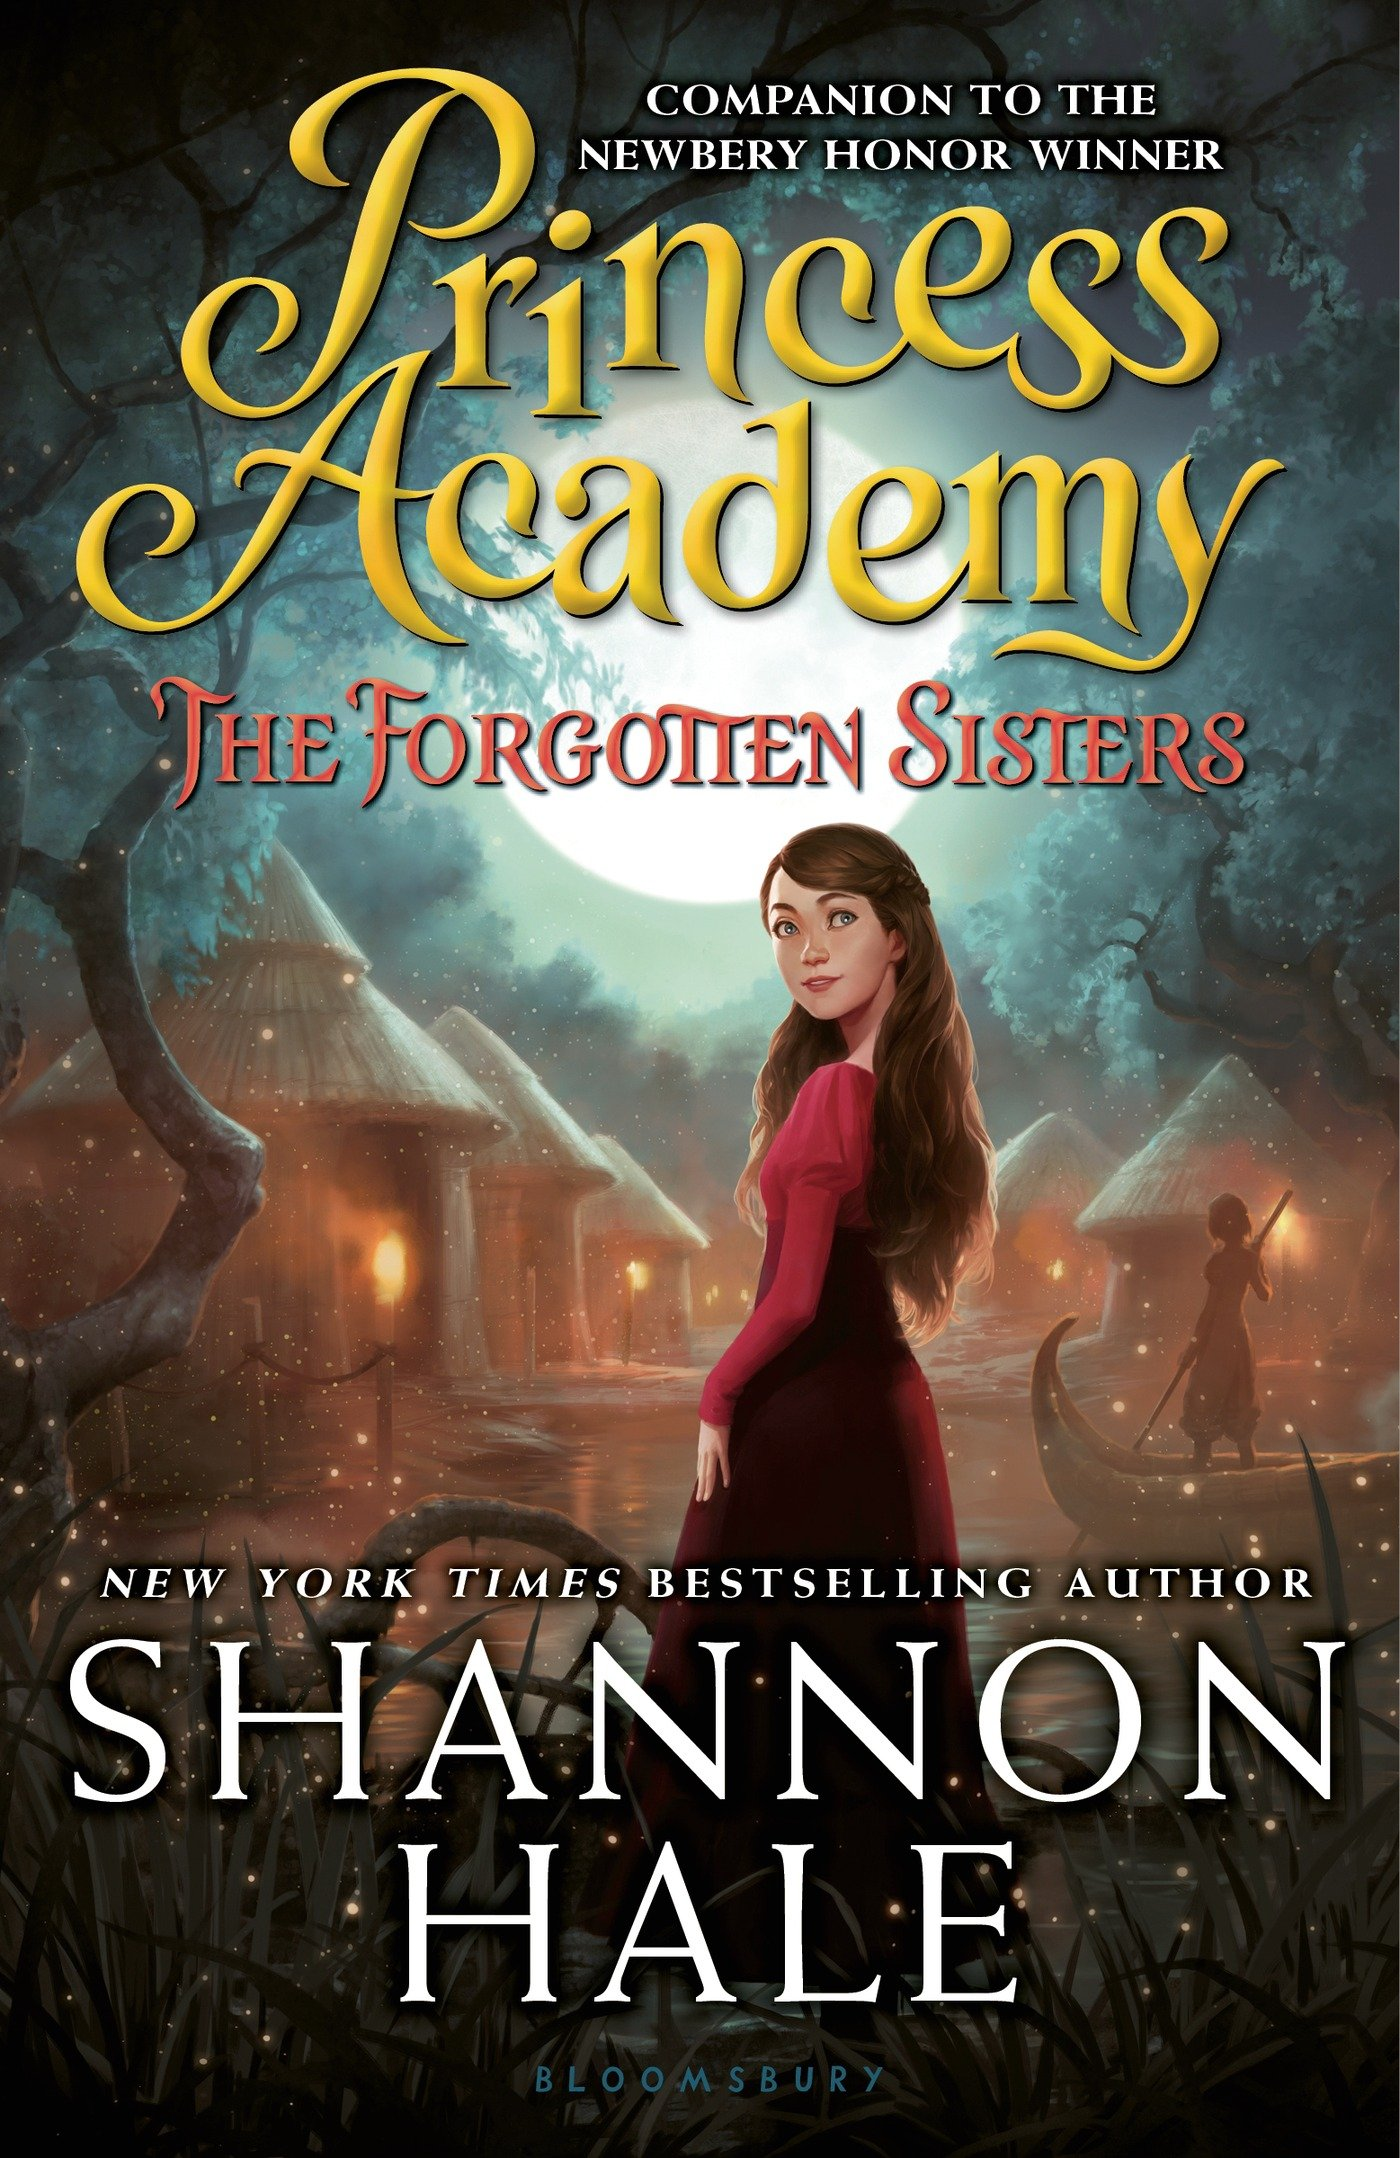 Princess Academy - The Forgotten Sisters by Shannon Hale